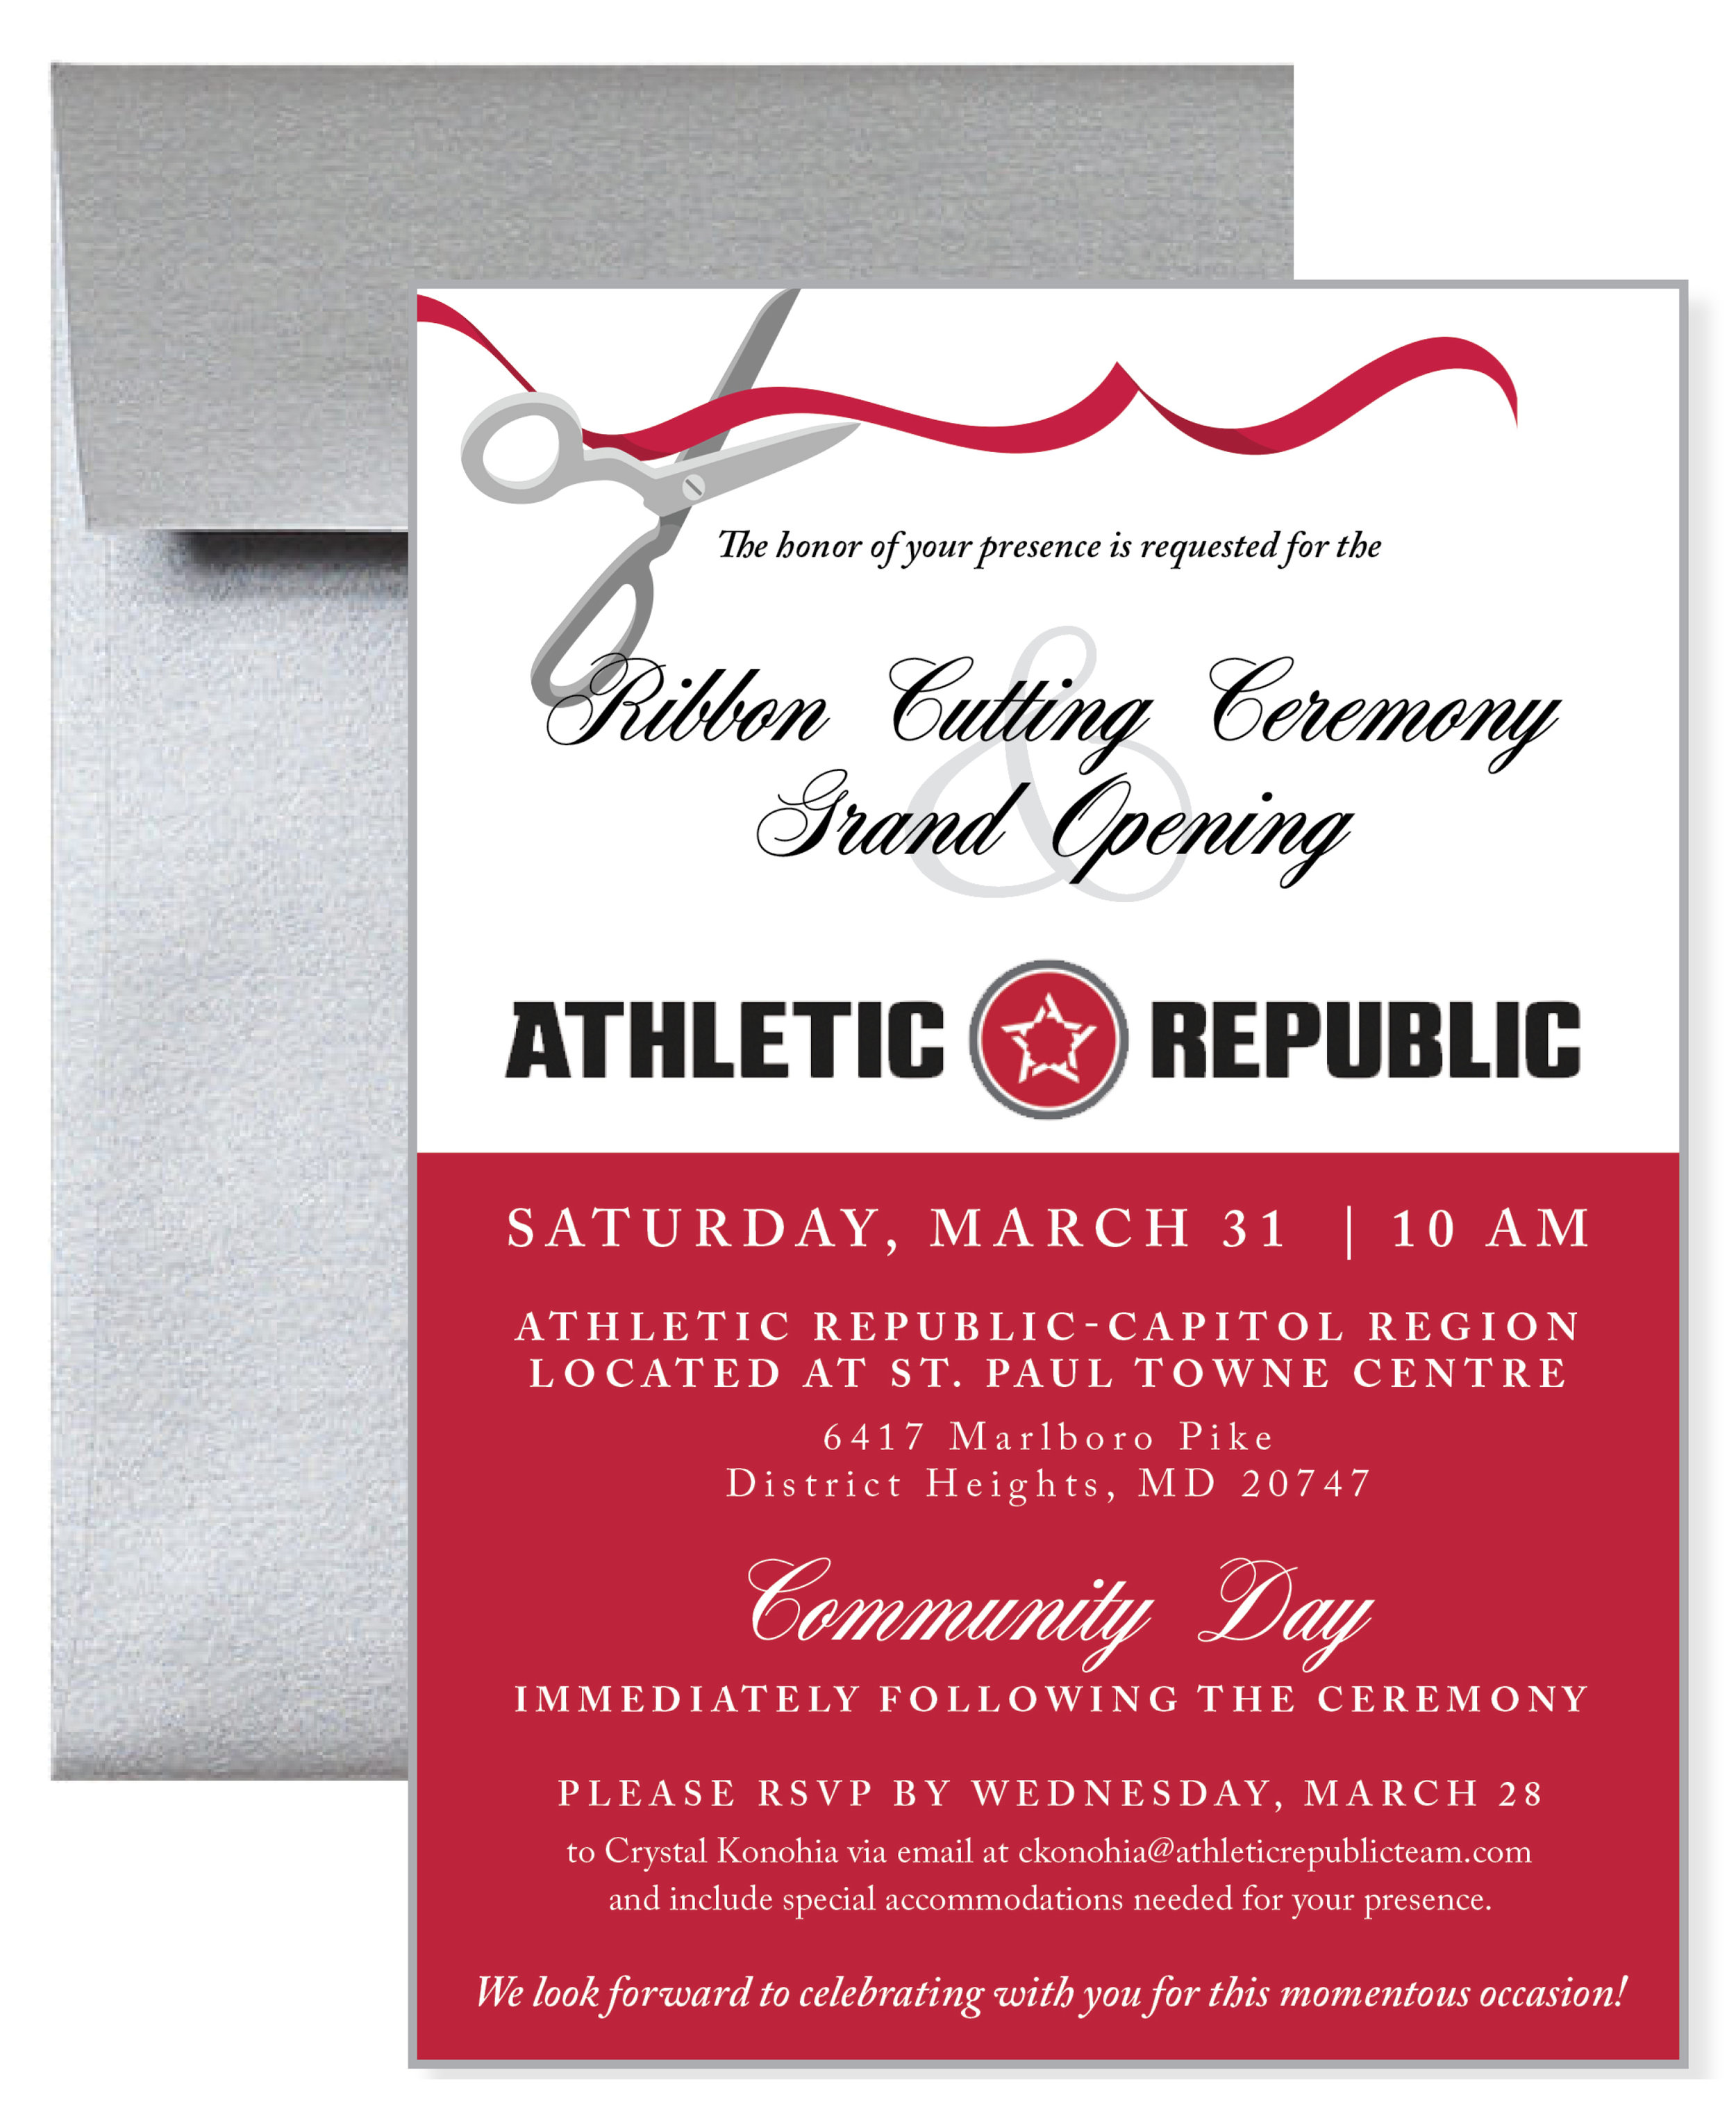 AthleticRepublic_RibbonCutting_EmailImage.jpg